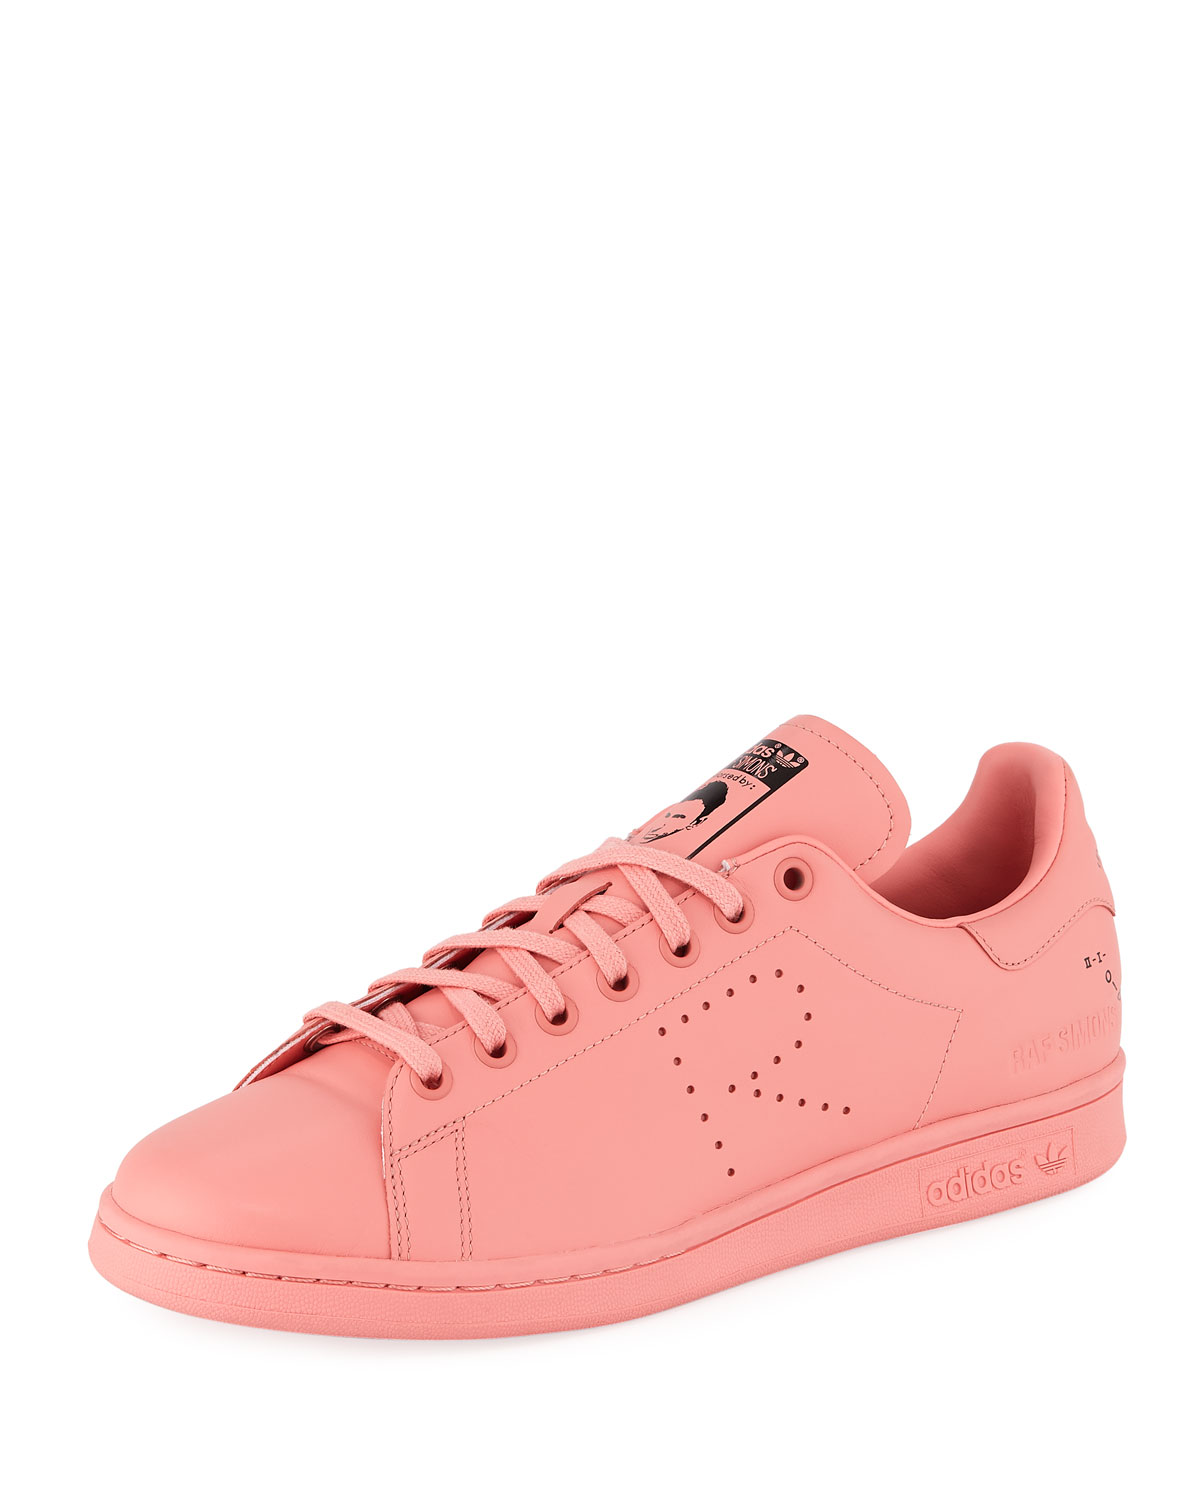 best loved 910d7 00f5e adidas by Raf Simons Men s Stan Smith Leather Low-Top Sneakers